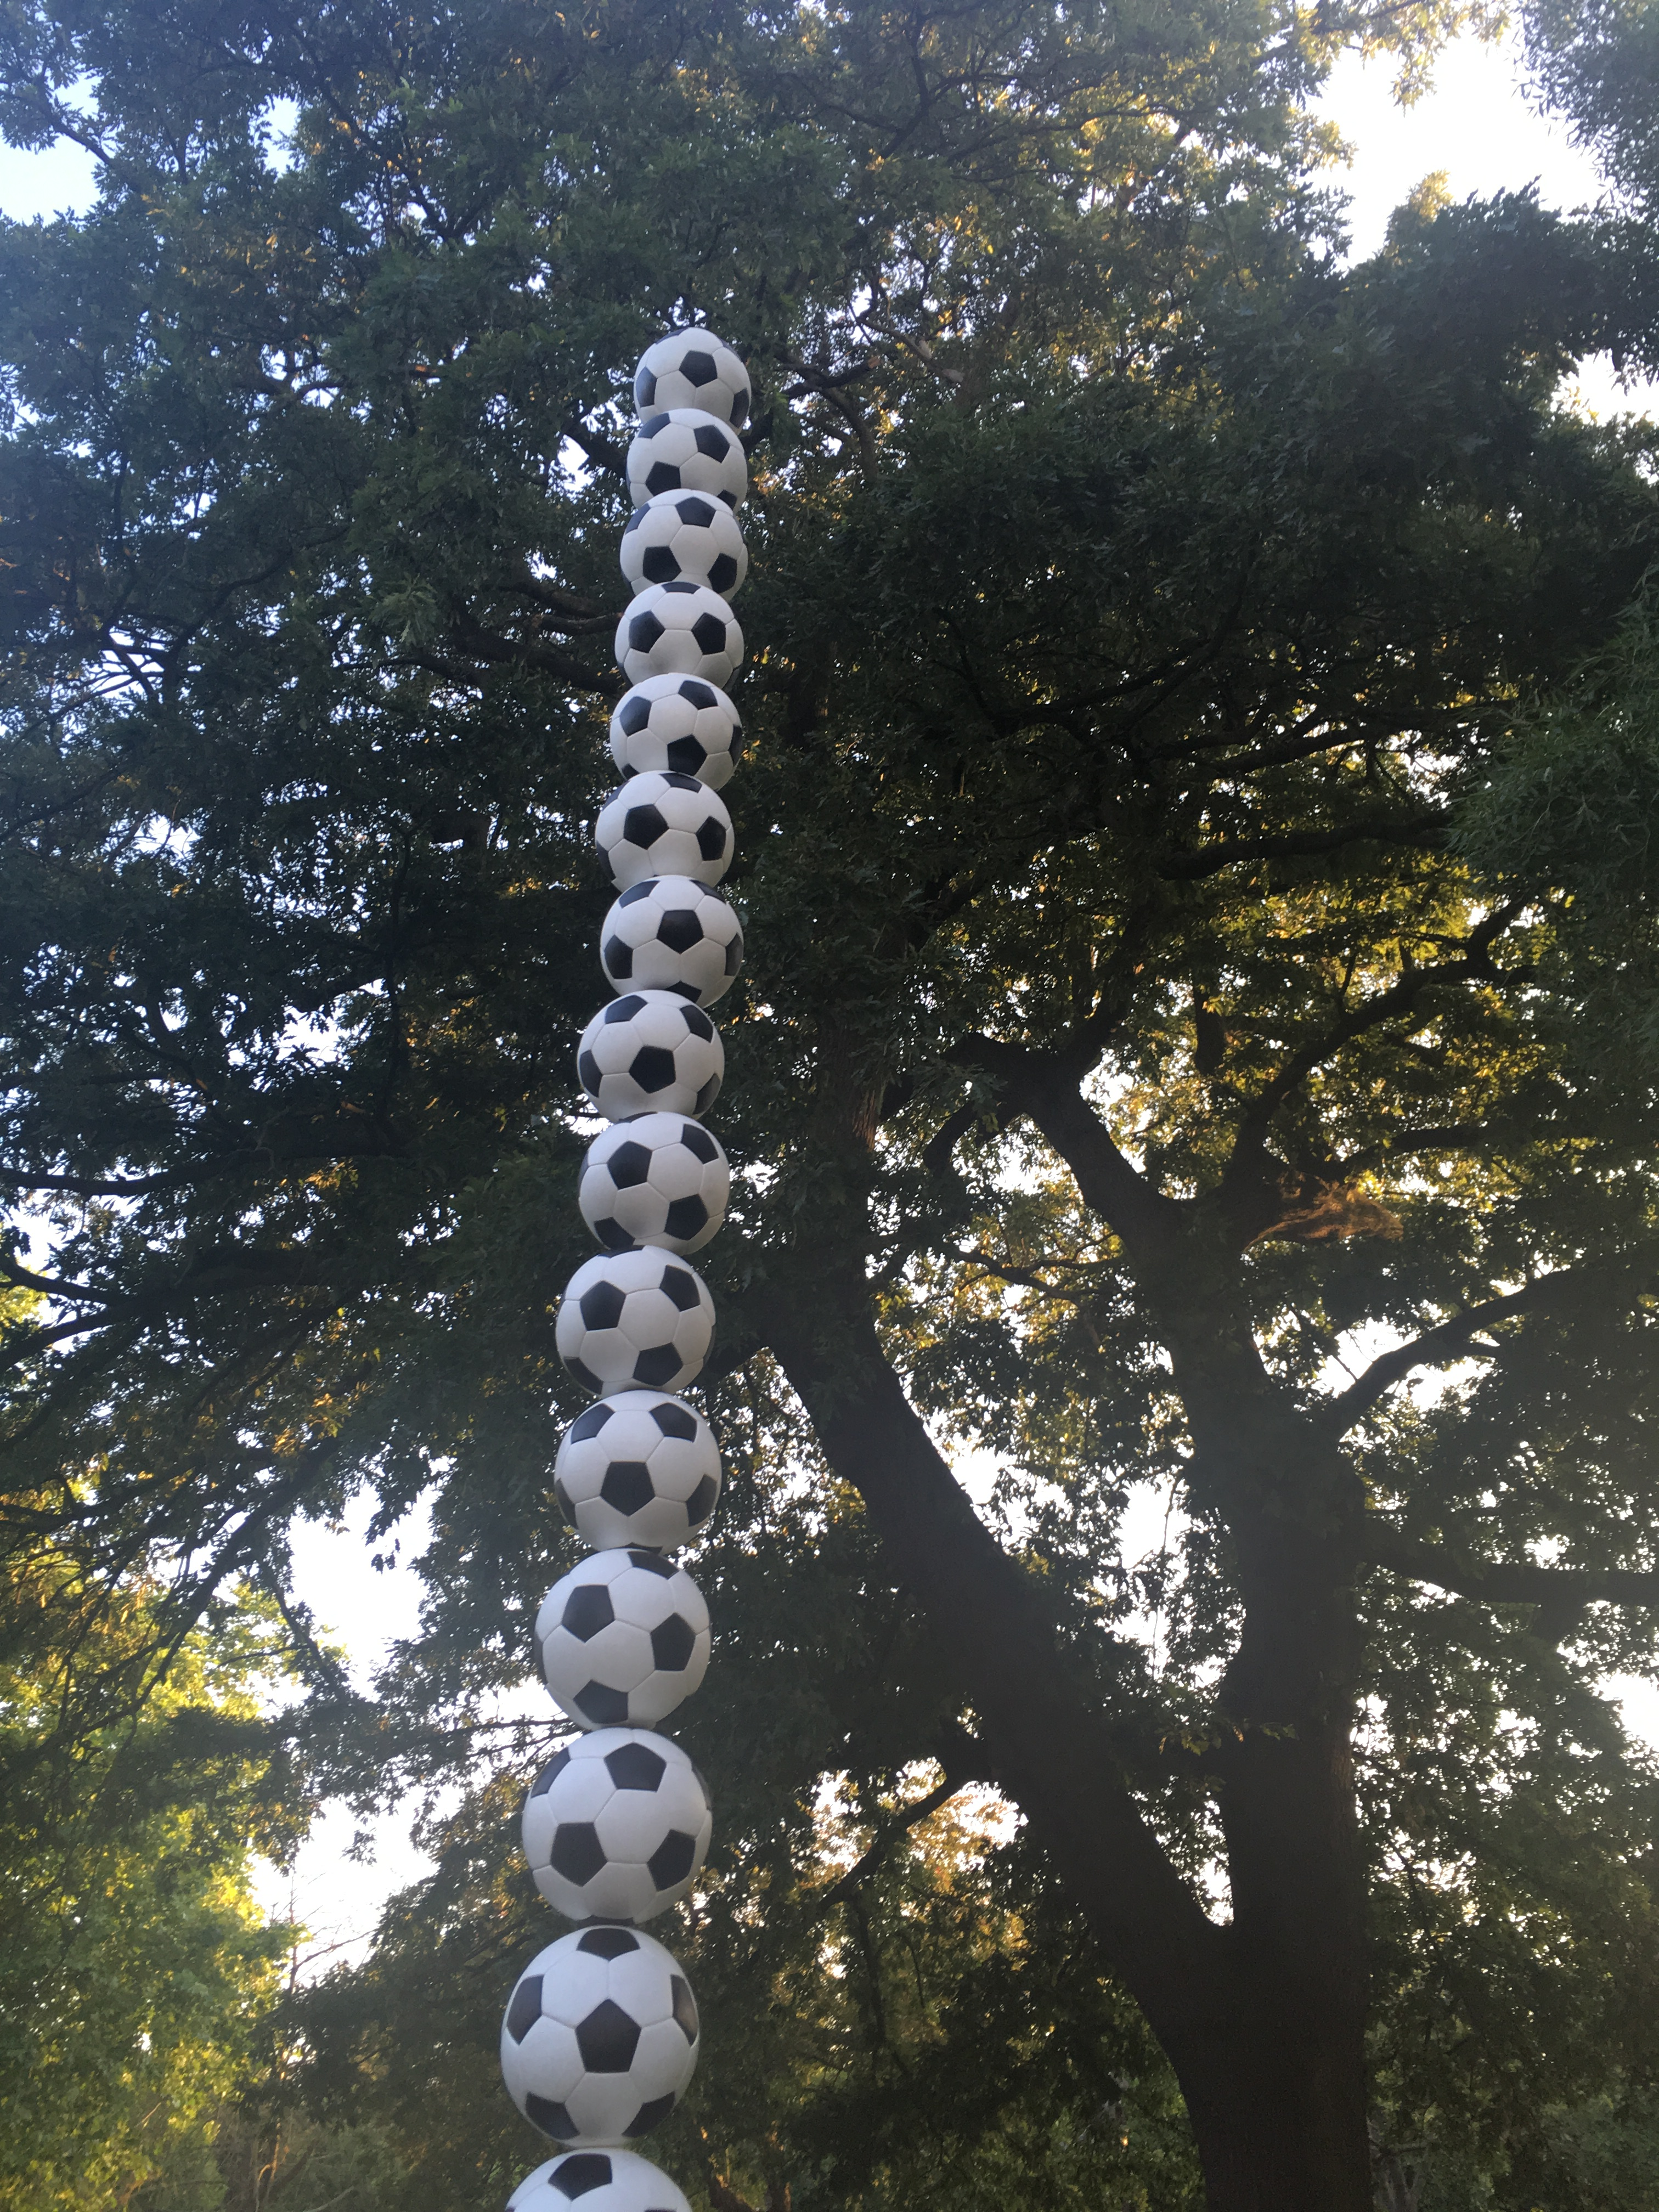 frieze_sculpture_footballs.JPG